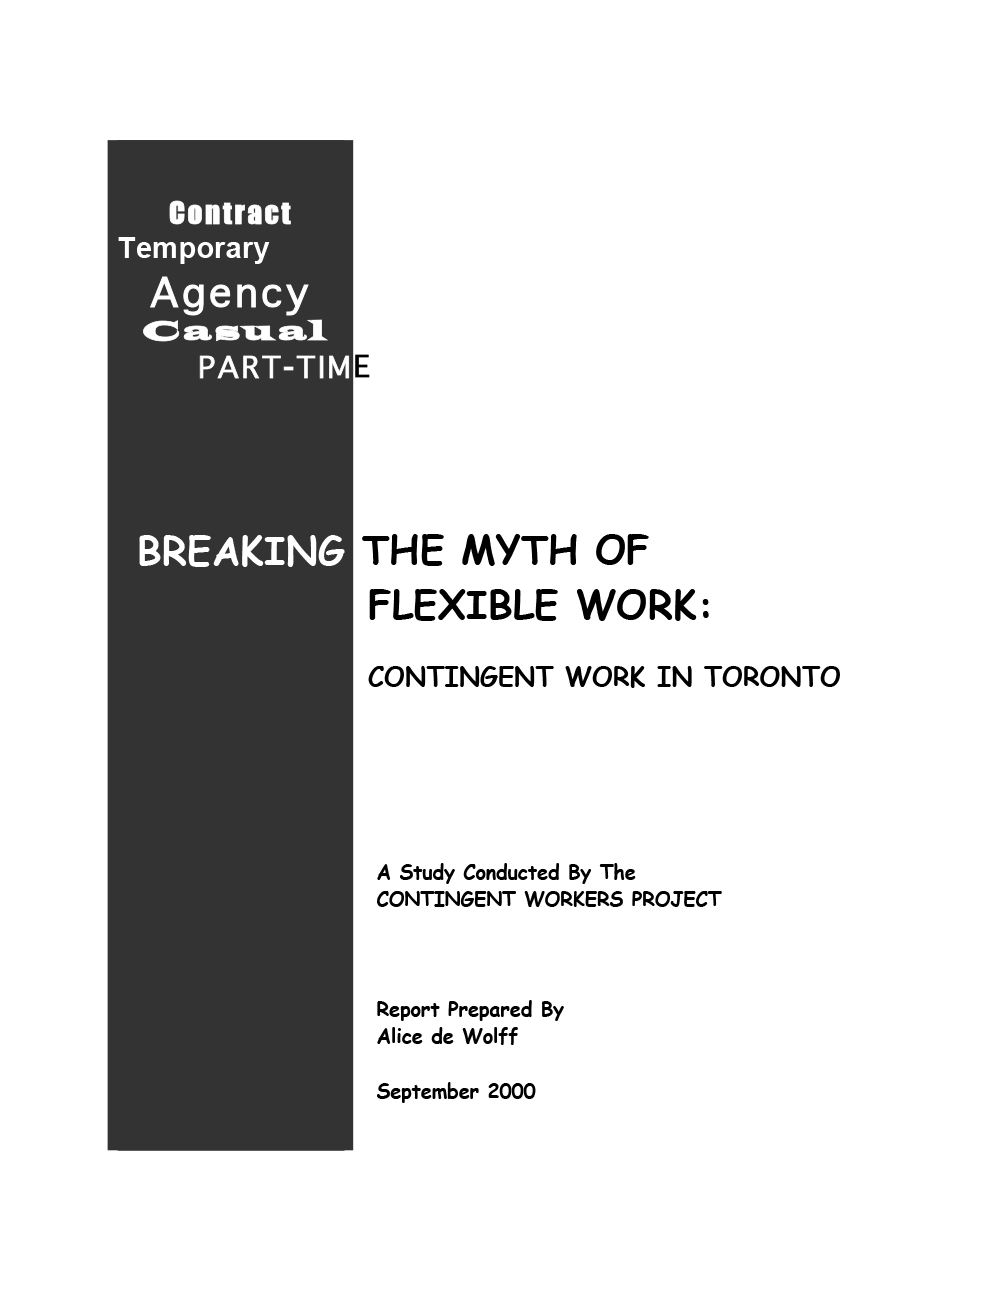 Breaking the Myth of Flexible Work Survey